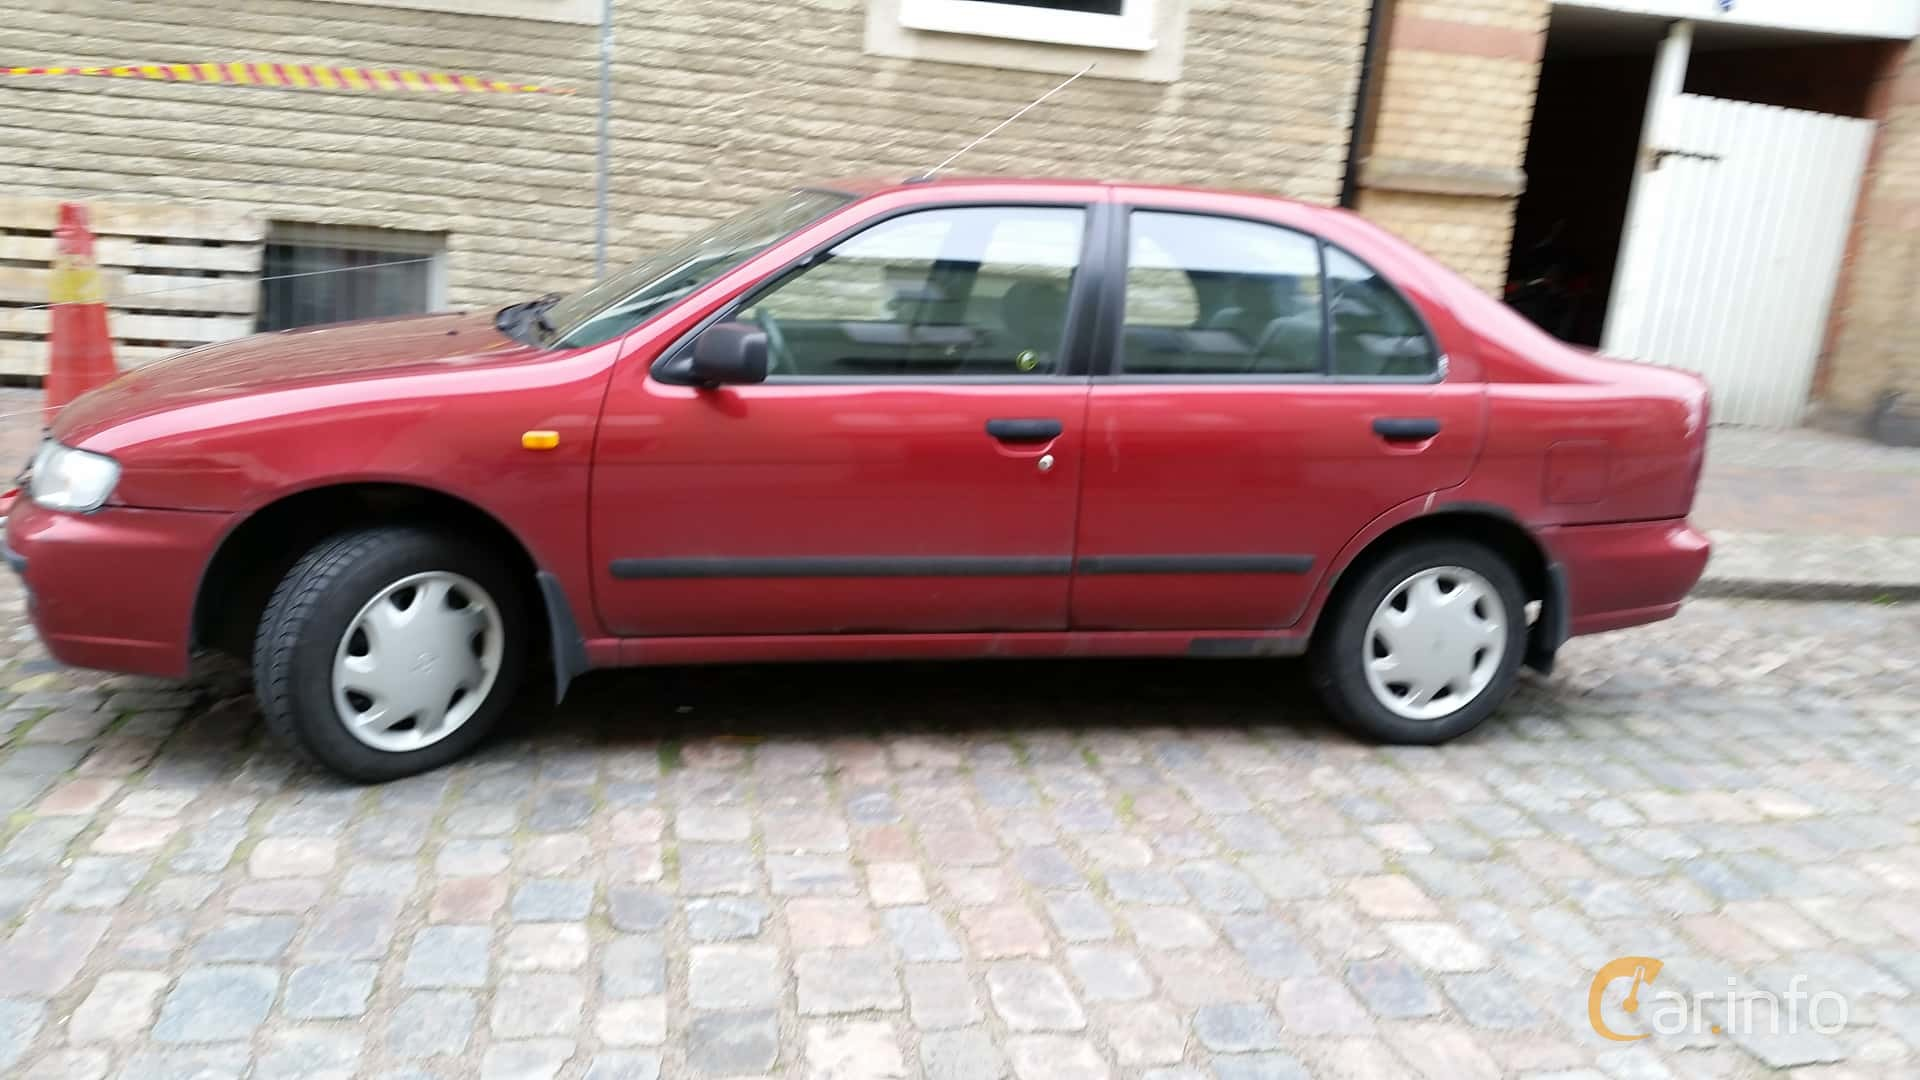 Where is the Engine Number Located In the Nissan Almera Nissan Almera Sedan Generation N15 Facelift 1 6 99ps 1998 Of Where is the Engine Number Located In the Nissan Almera